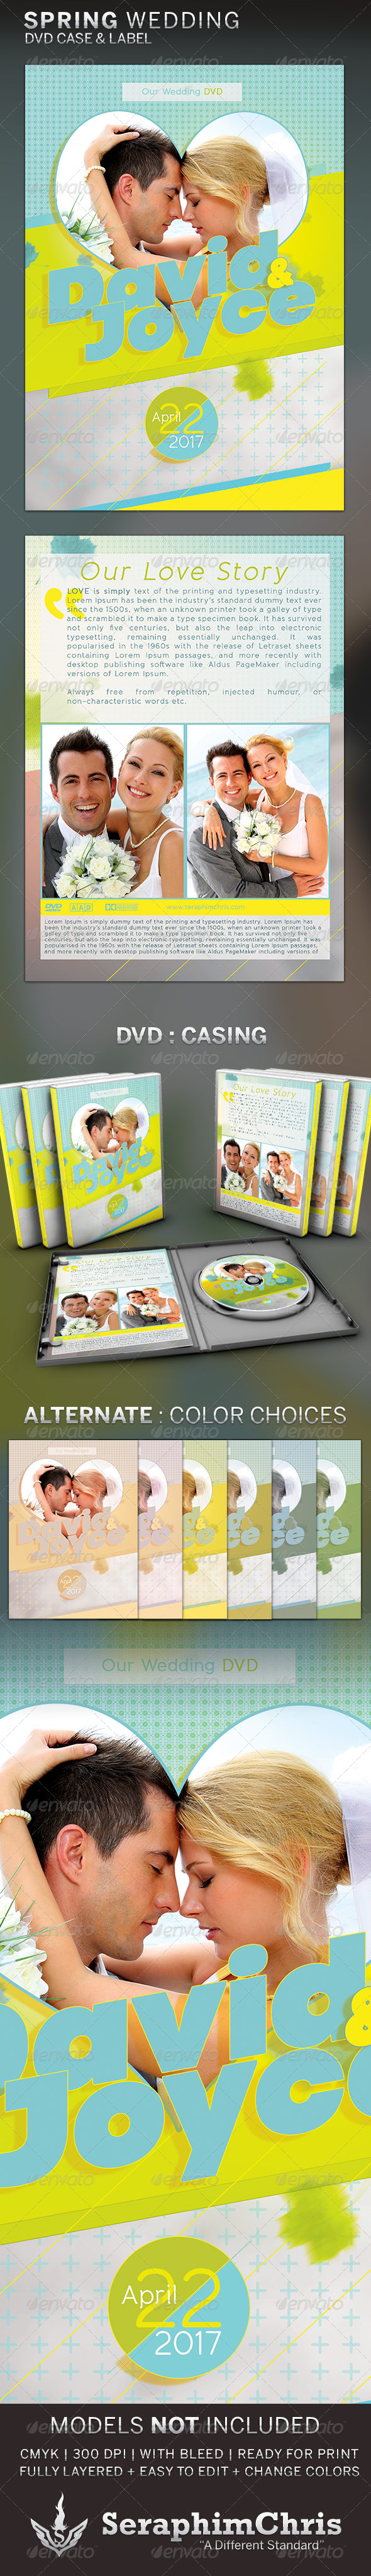 Spring Wedding DVD Template